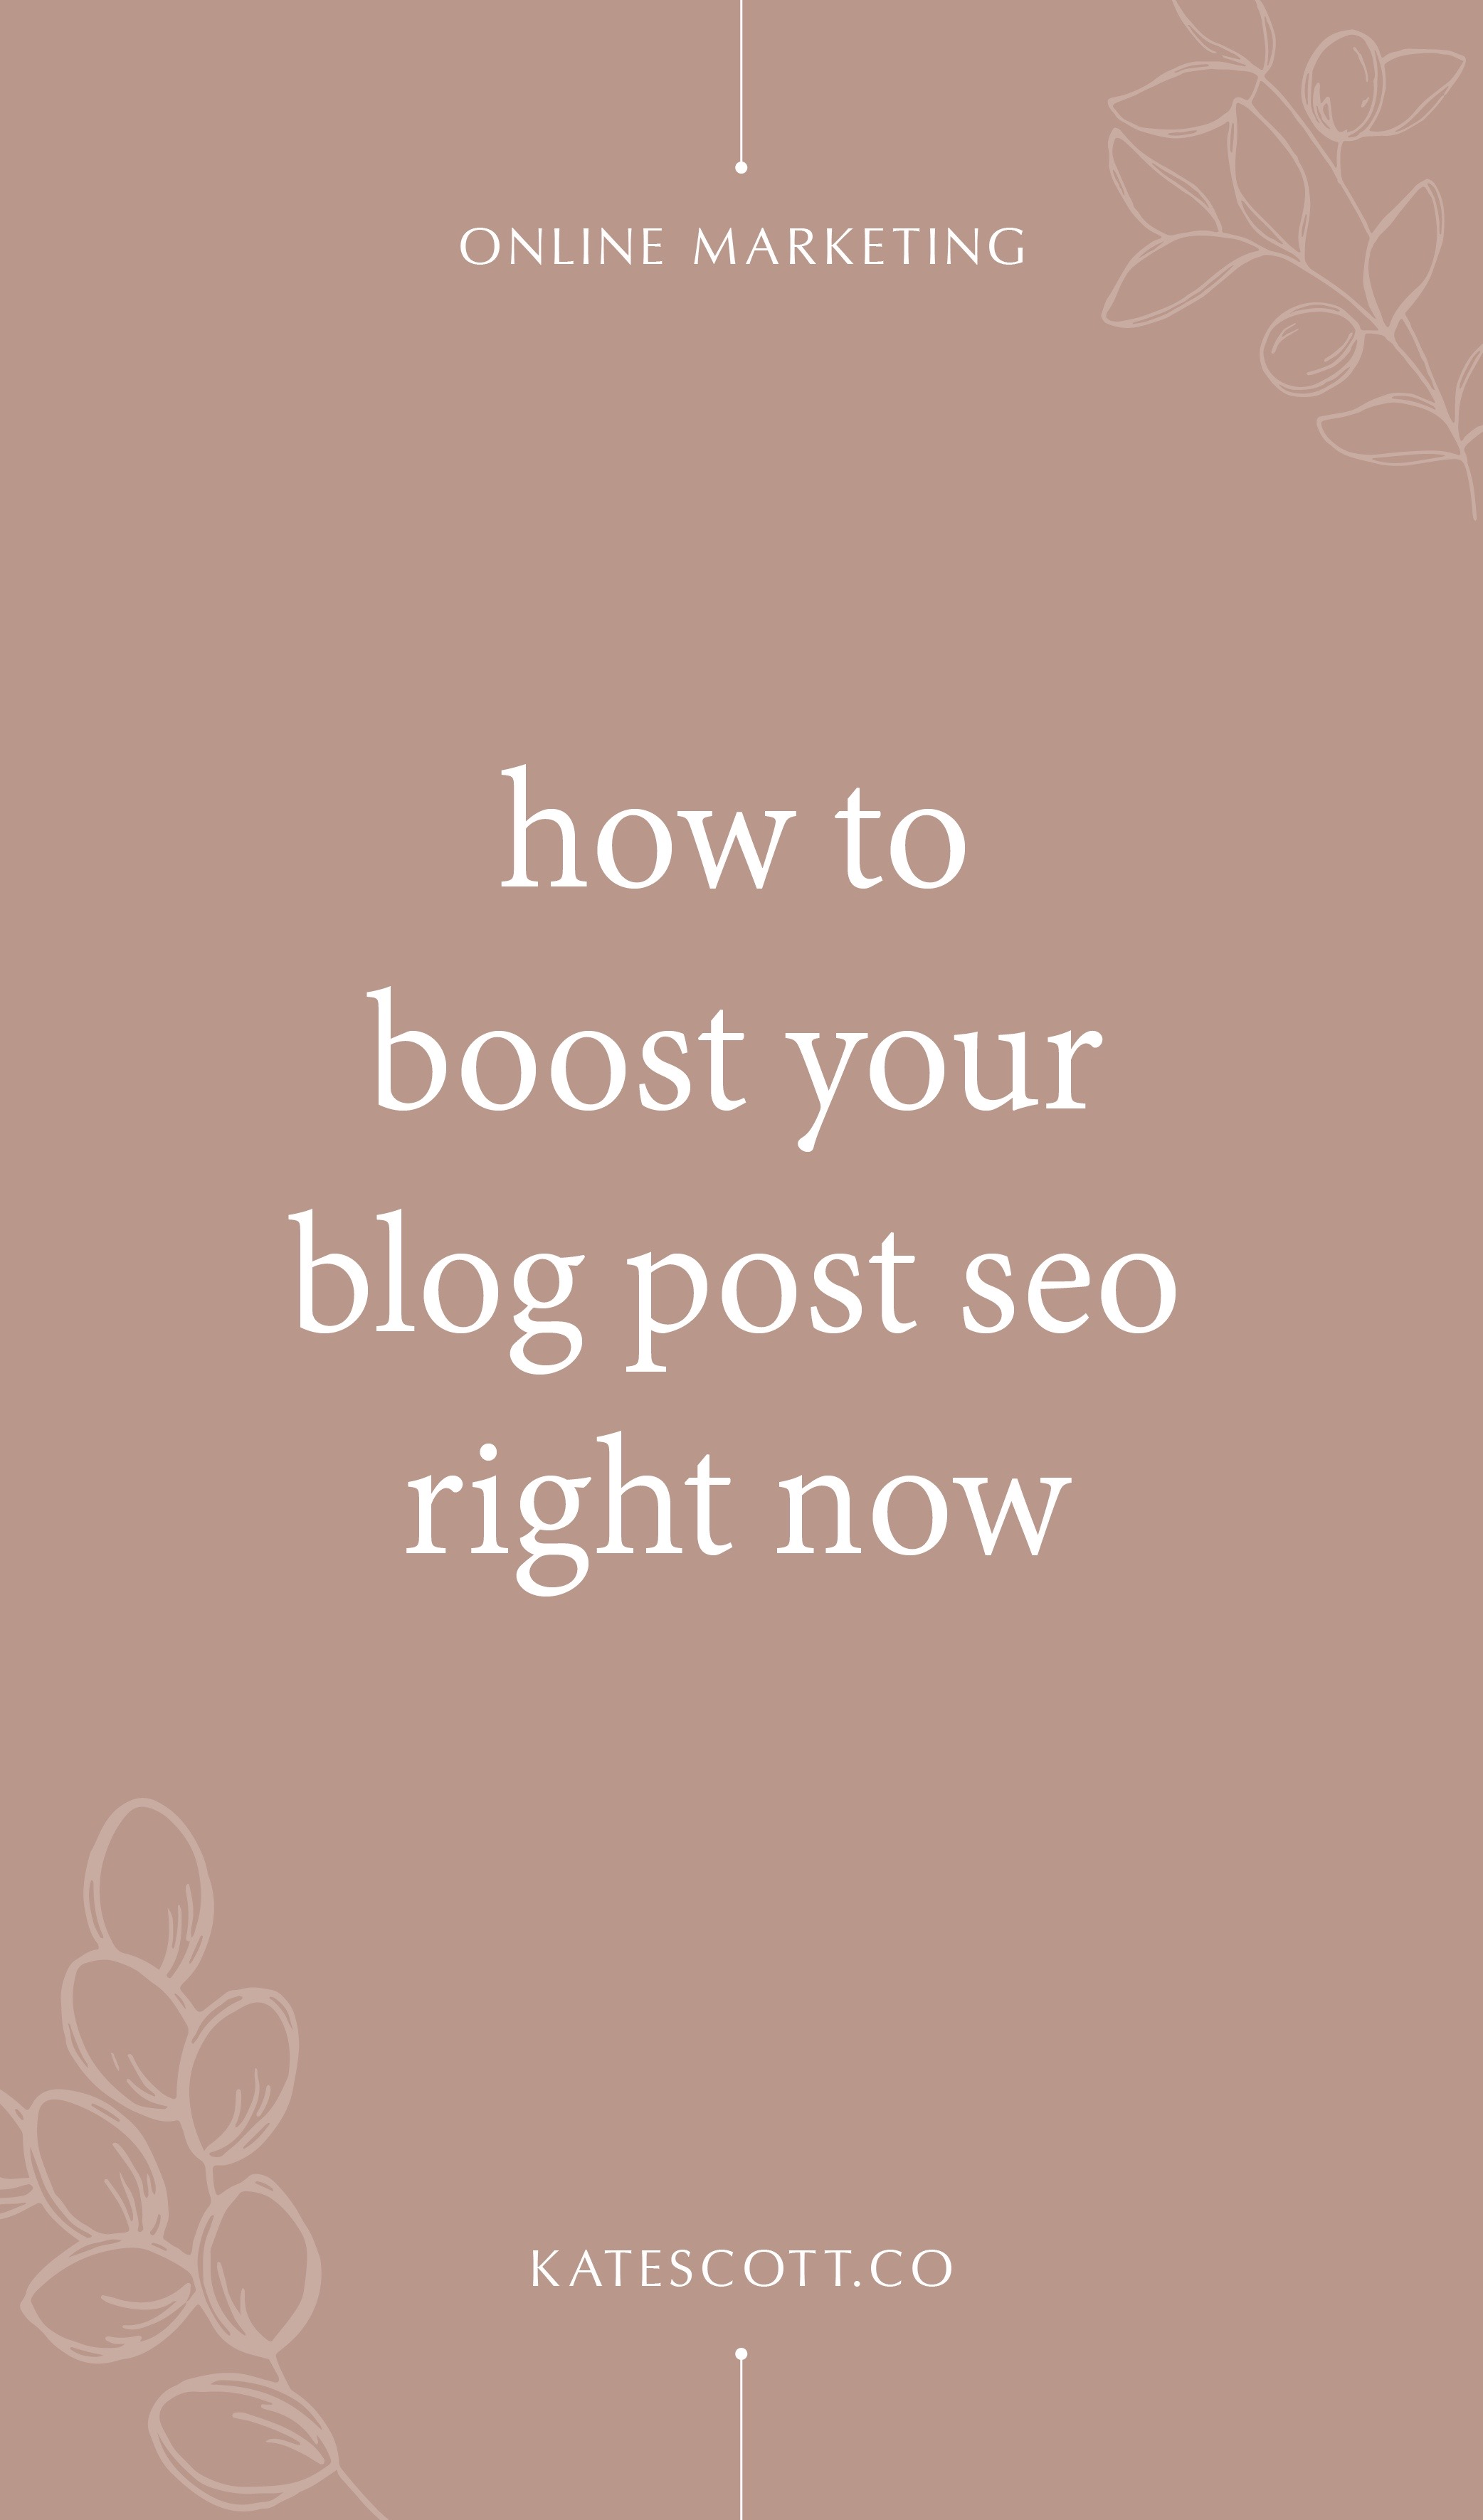 Ready to conquer Google? Optimize your blog post SEO and boost your traffic with this 5-step guide. Plus, grab a copy of the FREE Blog Post SEO Checklist! | SEO Tips and Tricks | SEO Beginners | SEO for Business | Search Engine Optimization SEO | SEO Like a Pro | Website SEO | Blog SEO | SEO Strategy | Google Search Tips | #Blogging #Bloggers #SEO